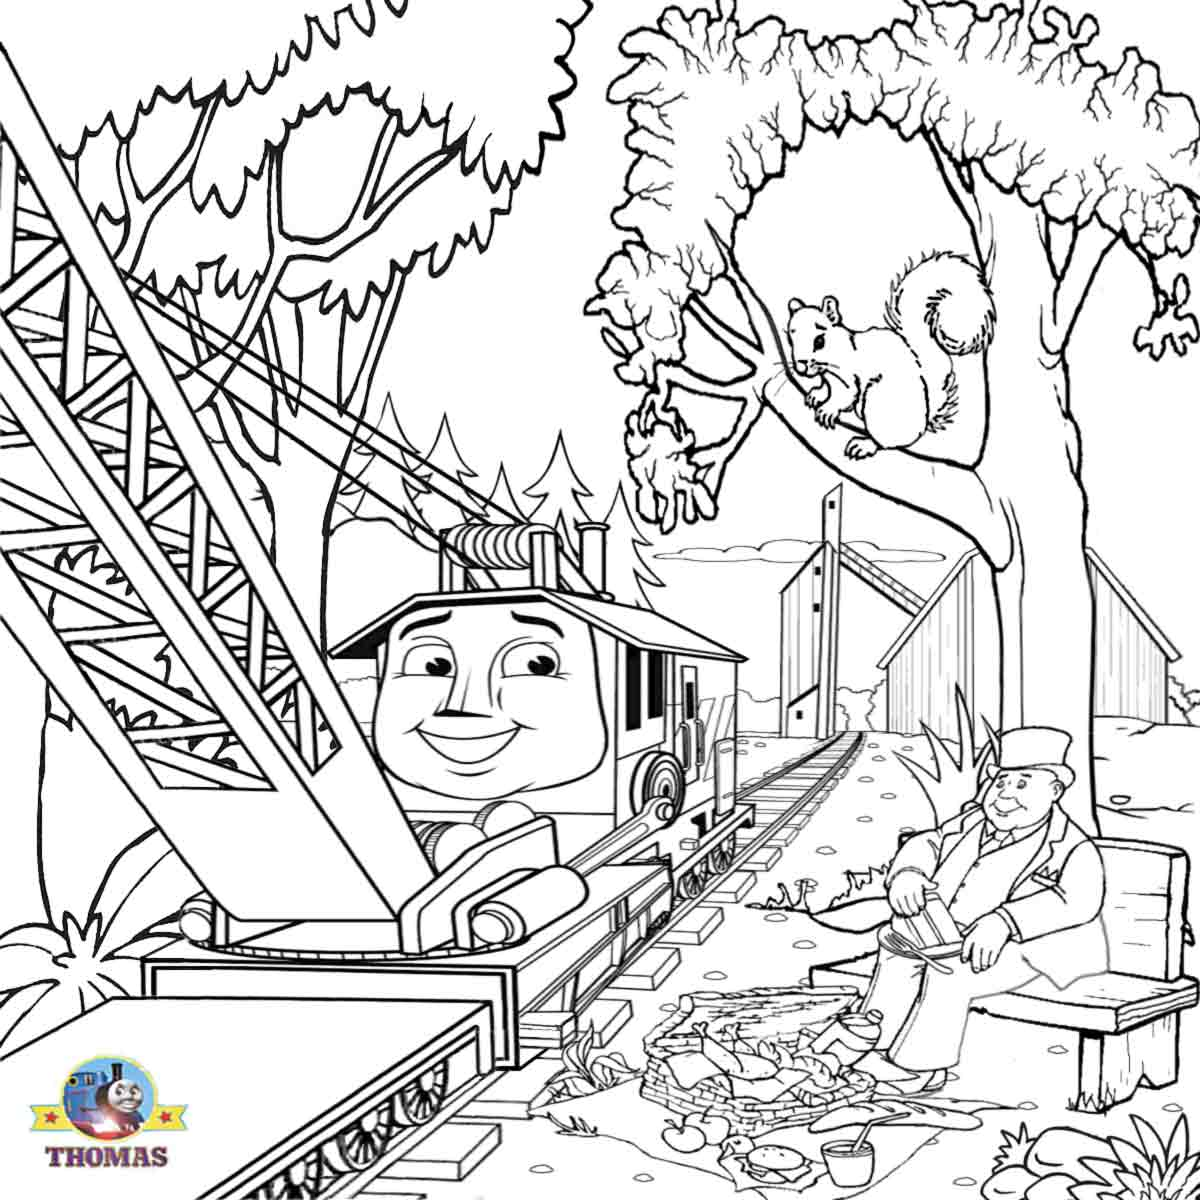 thomas the train color pages thomas the train coloring pages nature seasons the pages color thomas train